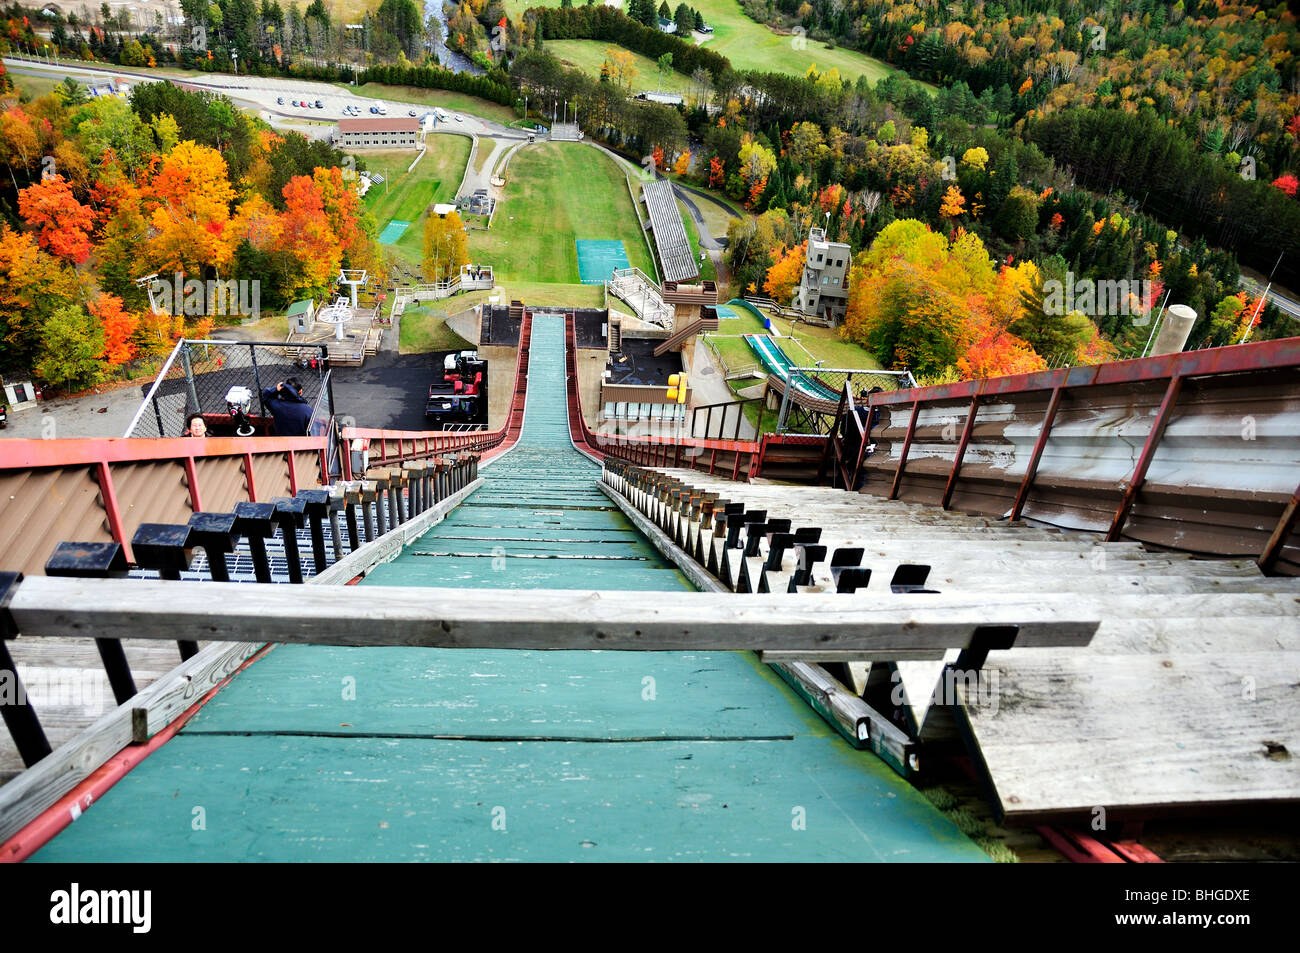 Ein Blick von der Olympiaschanze Tor in Lake Placid, New York, USA. Stockbild